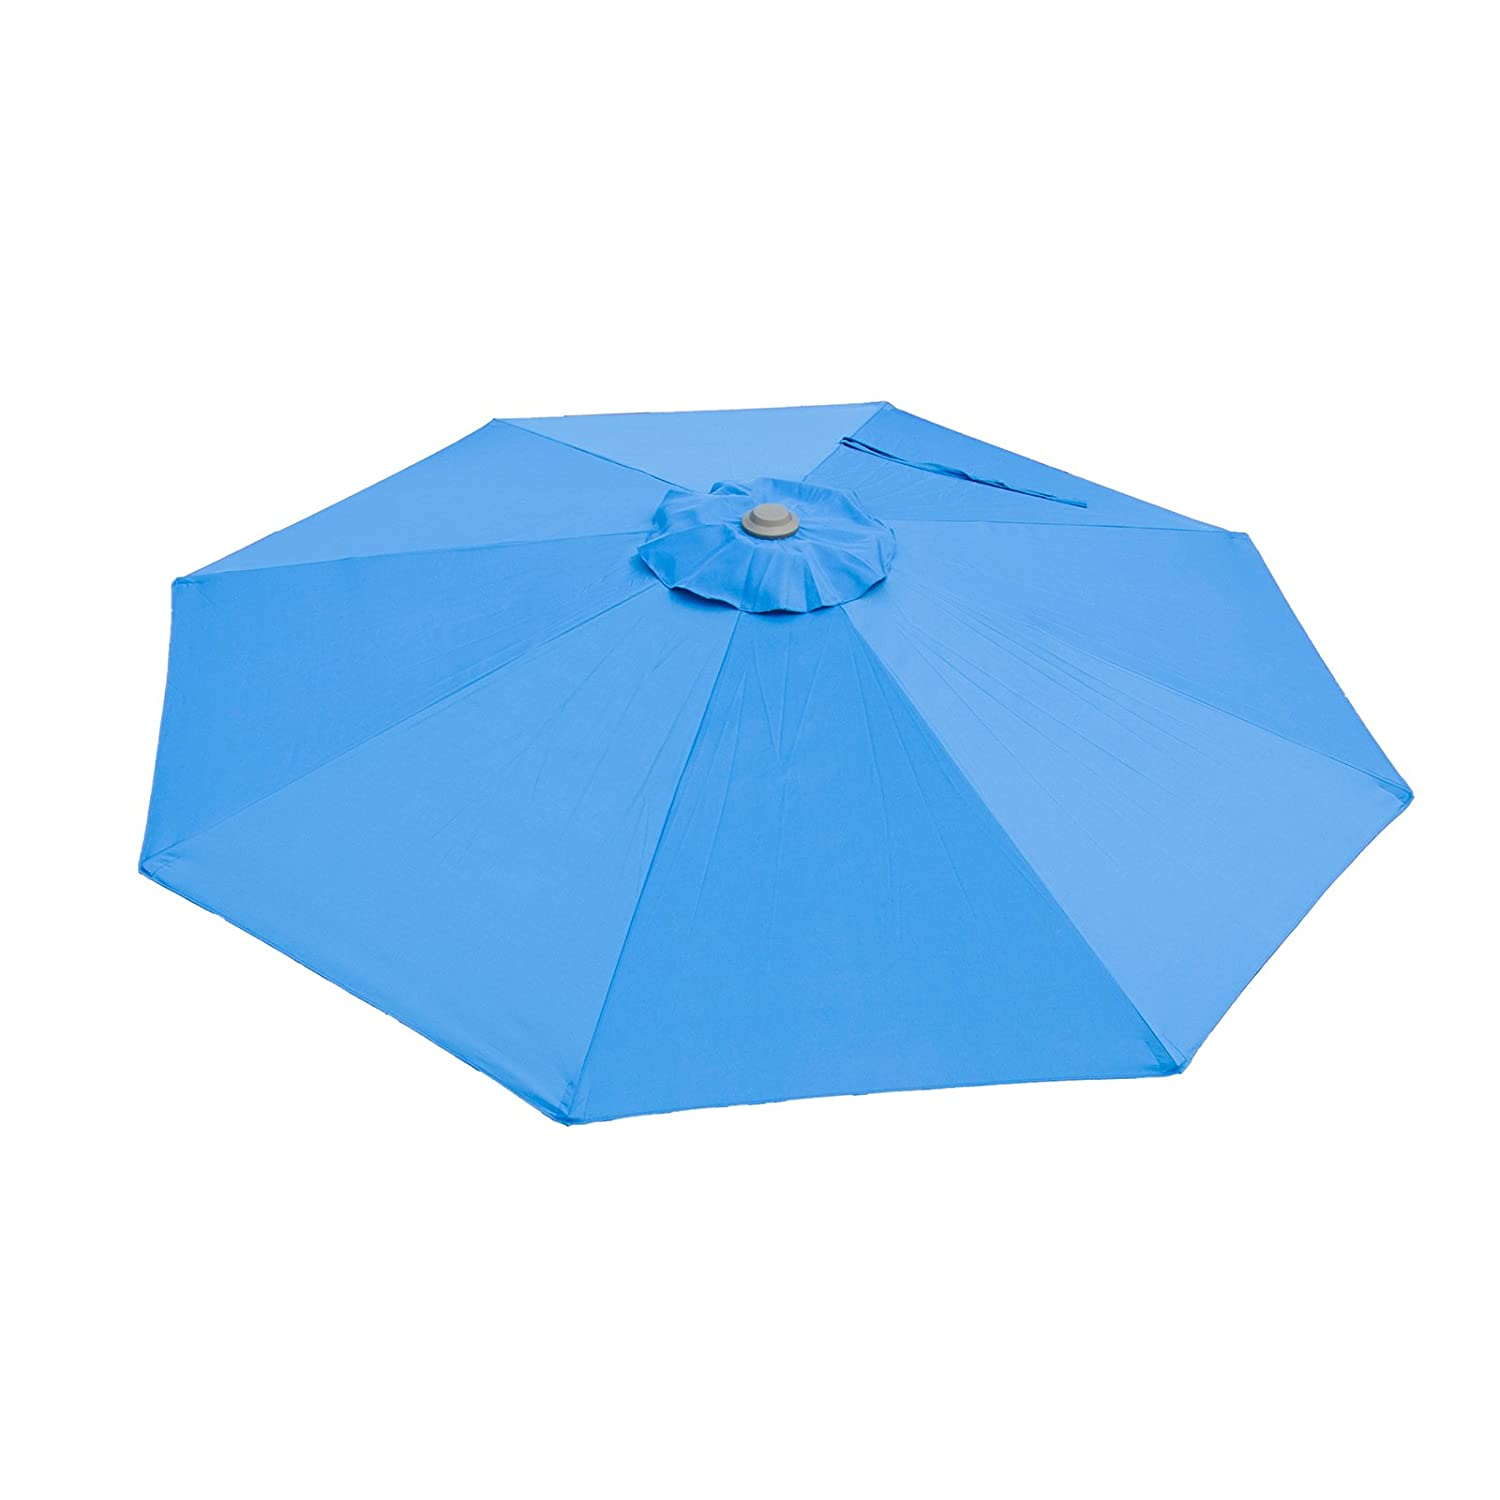 Caymus 9 Ft Market Outdoor Table Patio Umbrella with Push Button Tilt and Crank,8 Ribs,Blue